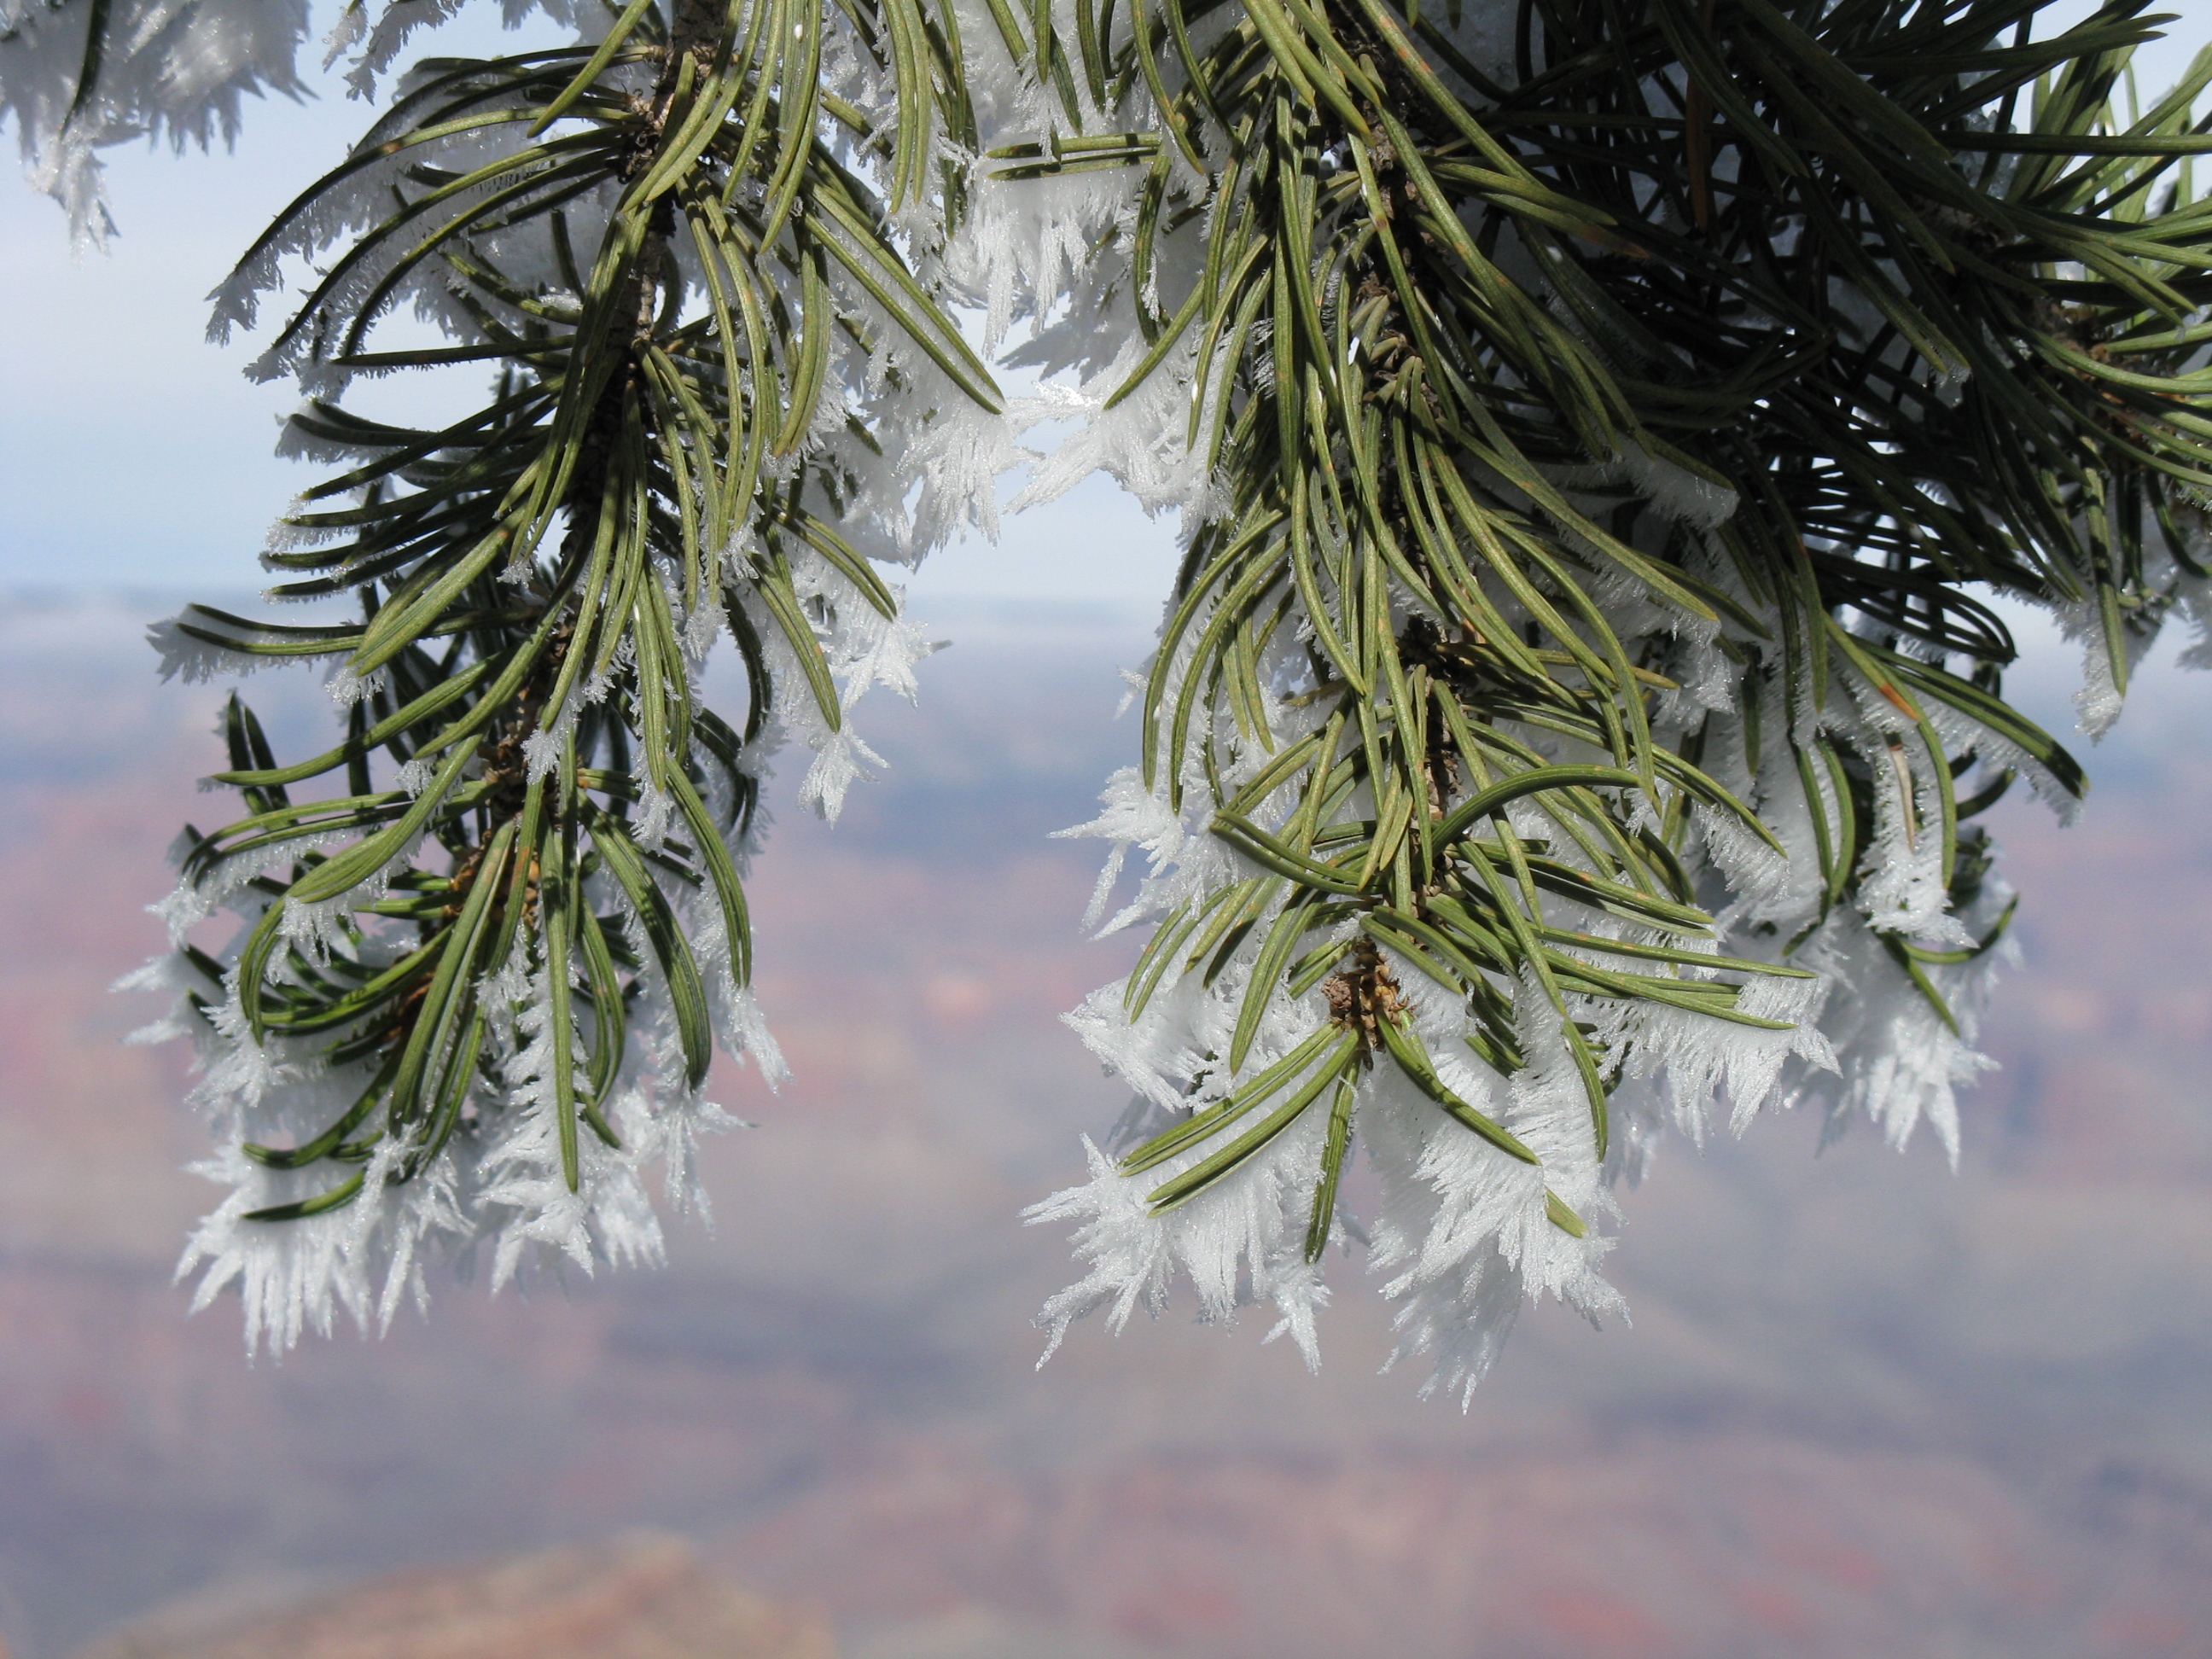 Cold Day – Grand Canyon, AZ